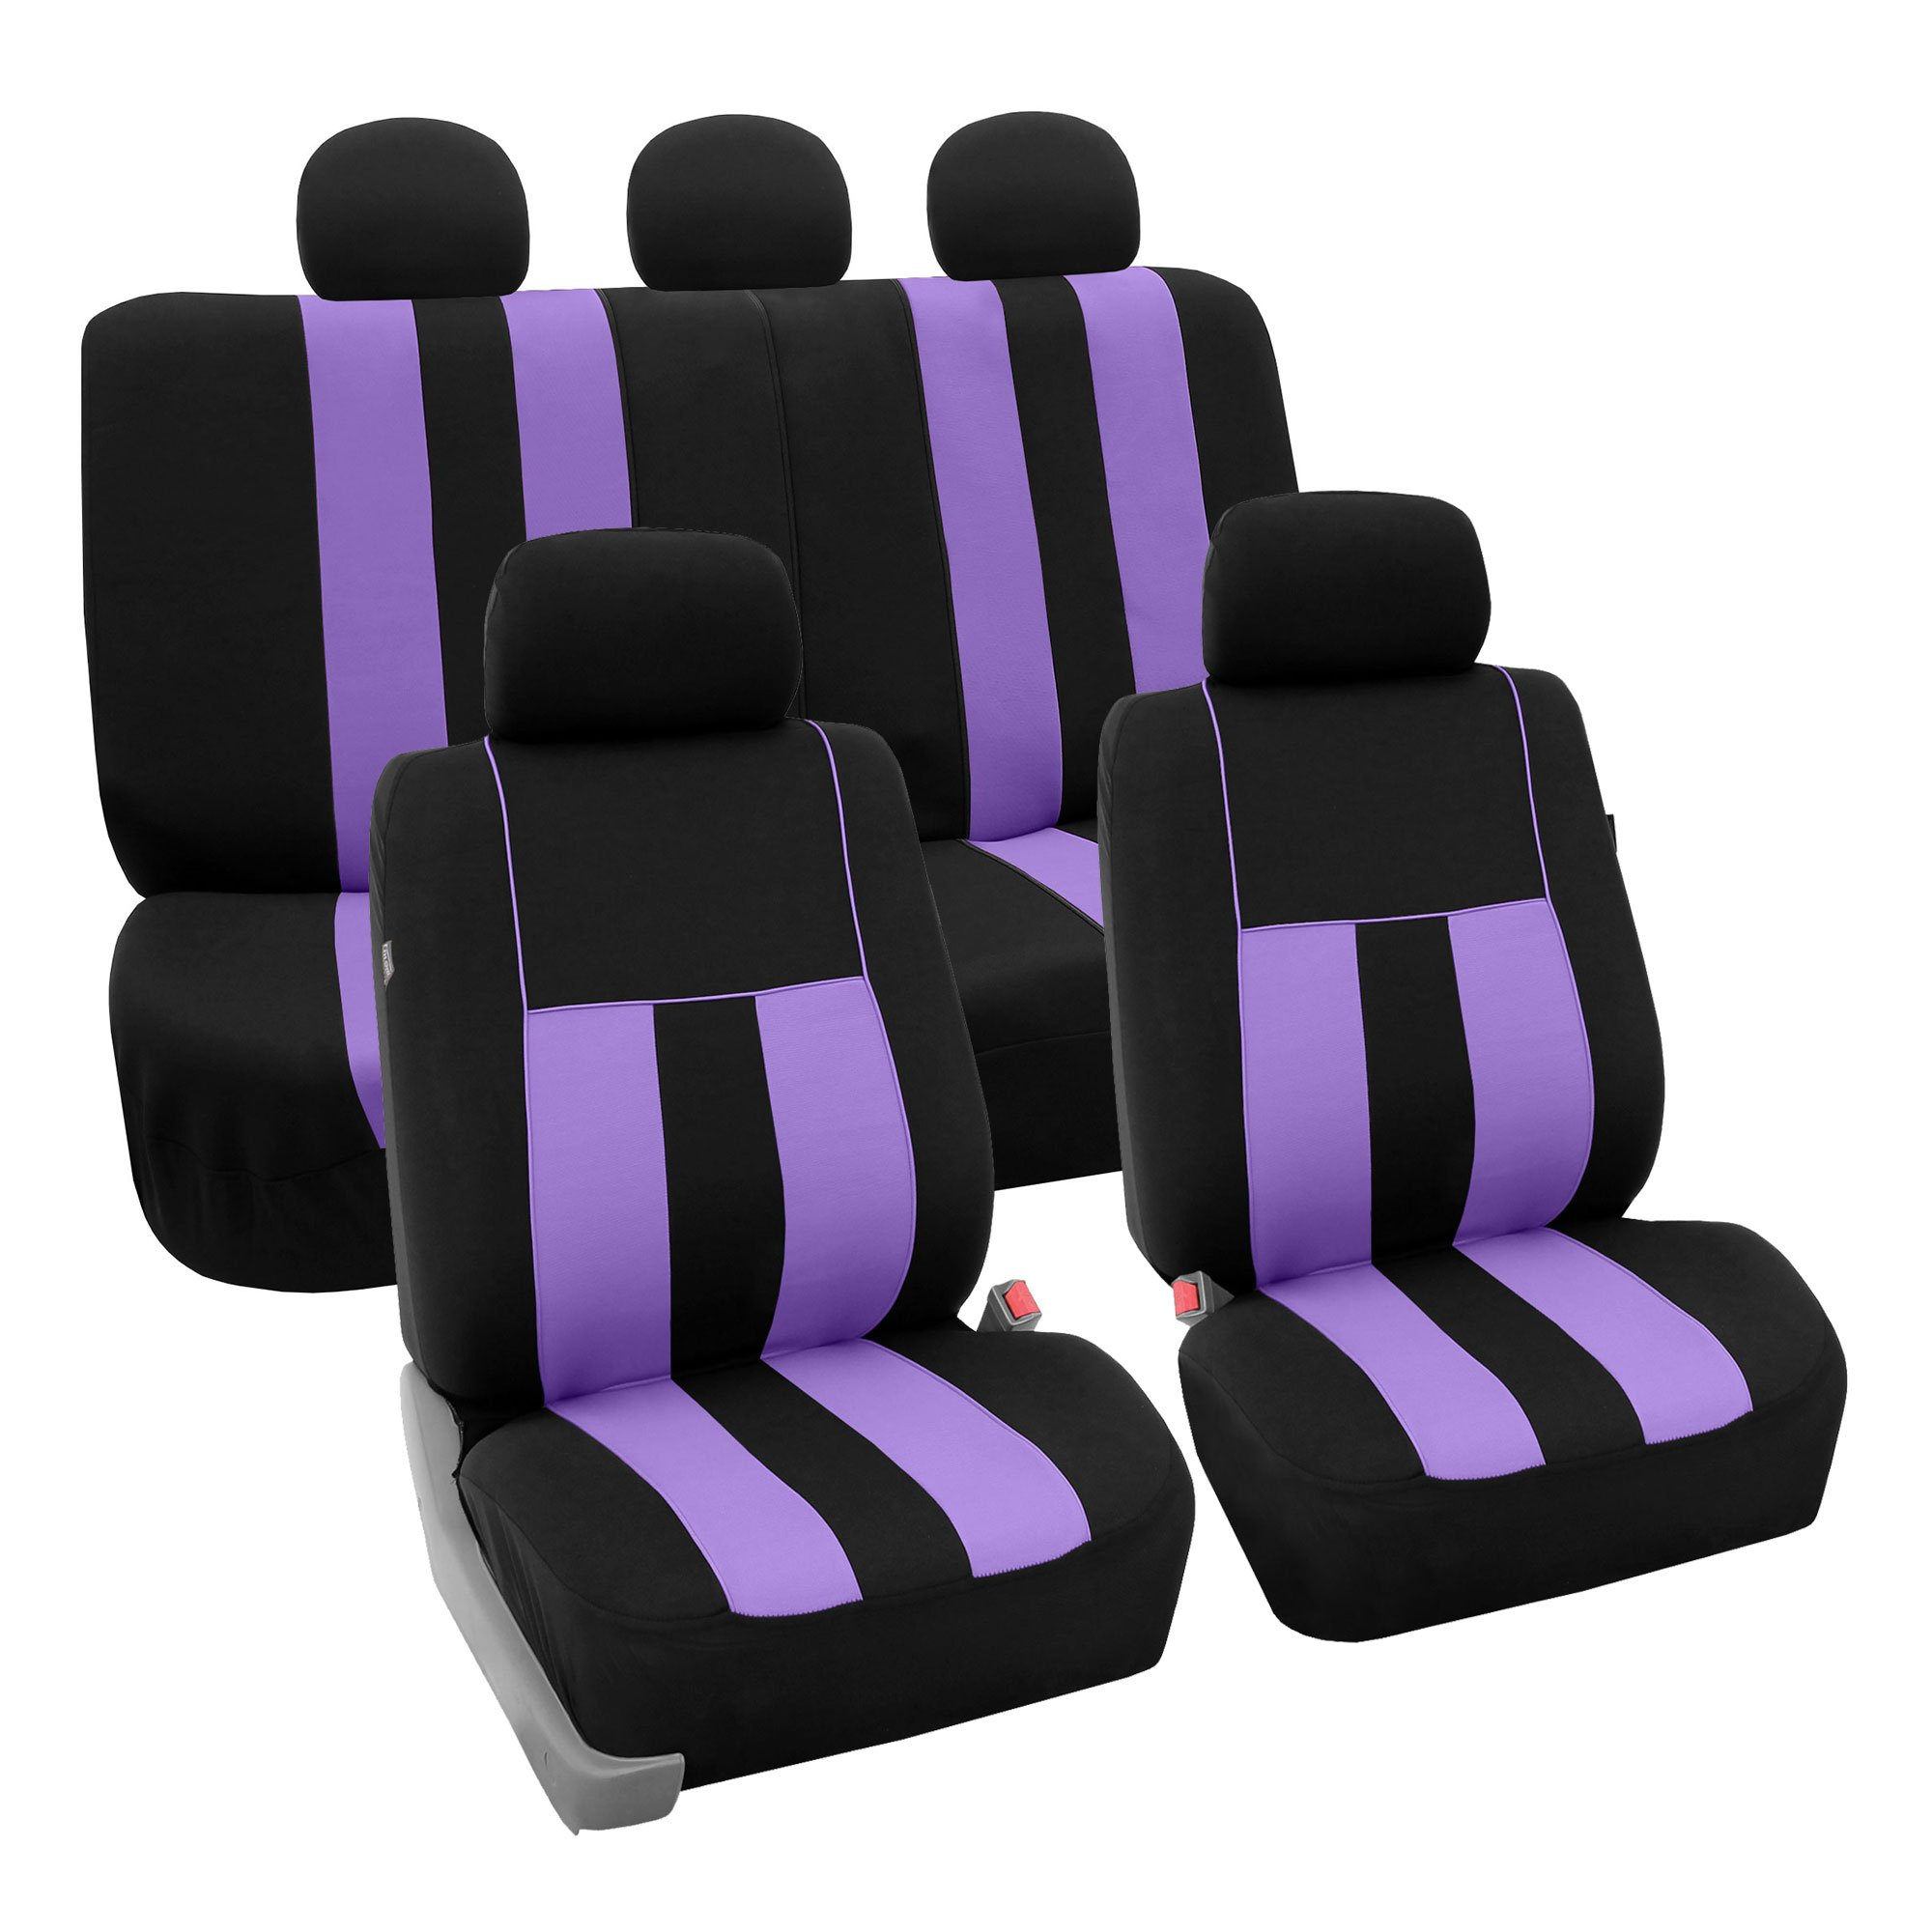 FH Group FB036PURPLE115 Seat Cover (Airbag Compatible and Split Bench Purple) by FH Group